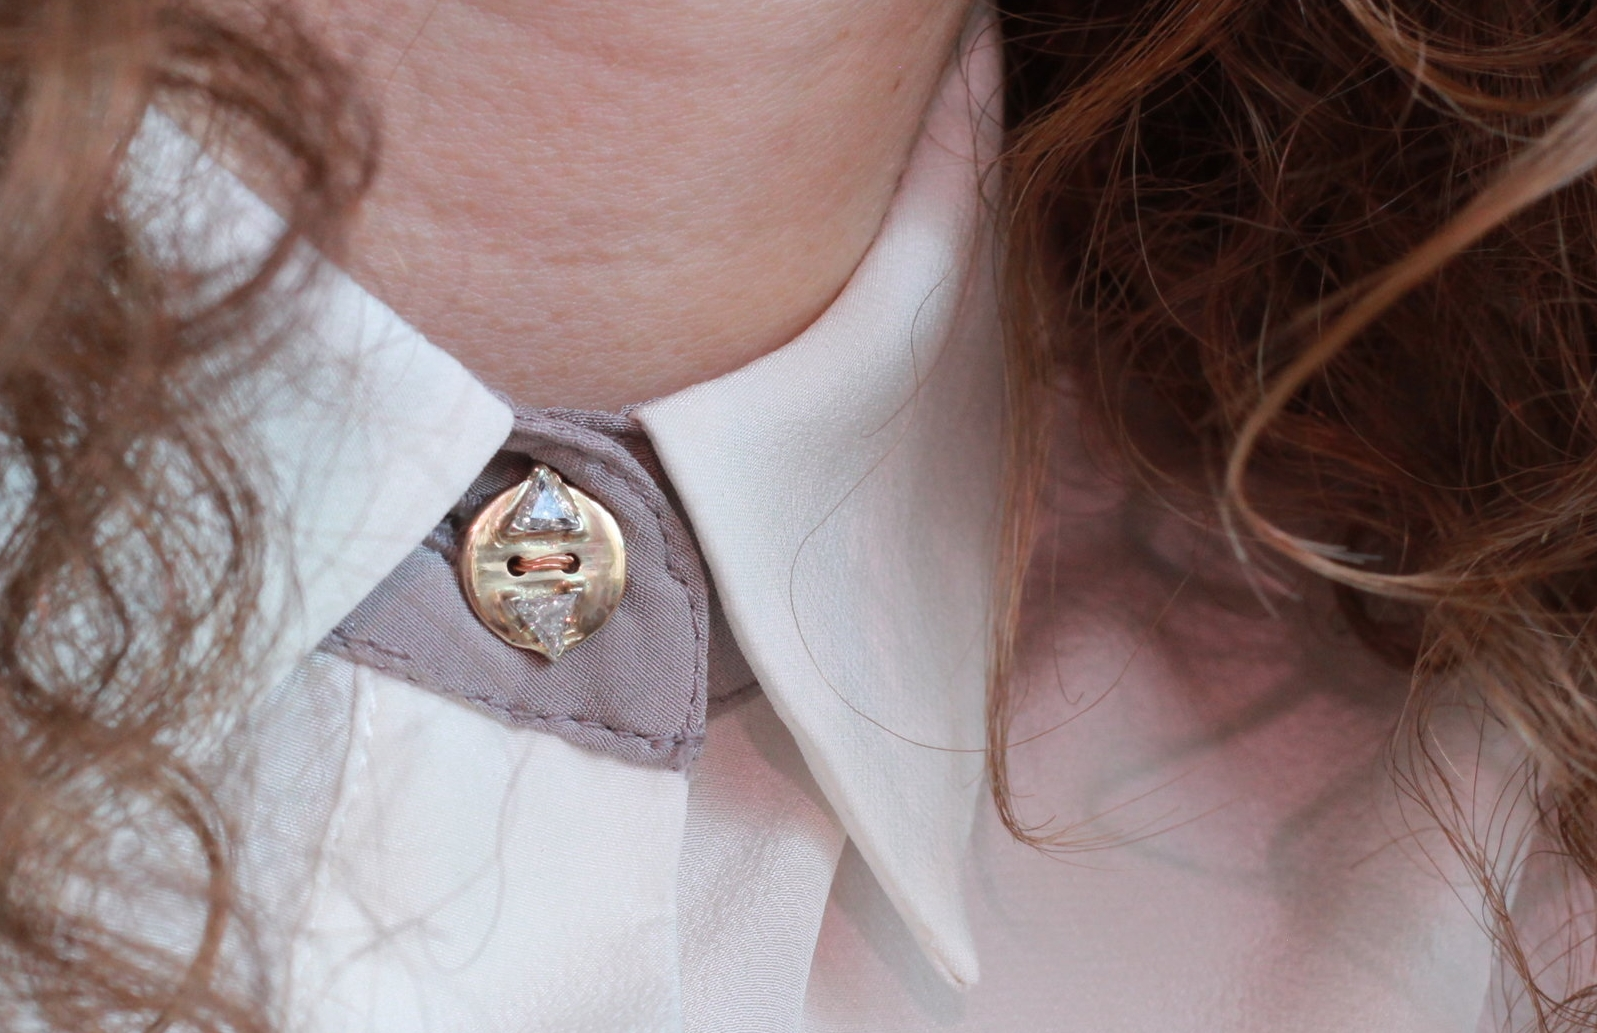 Do It Anyway.  A diamond-encrusted gold shirt button made from my mother's wedding ring as a tribute to the quandary of emotional recklessness.